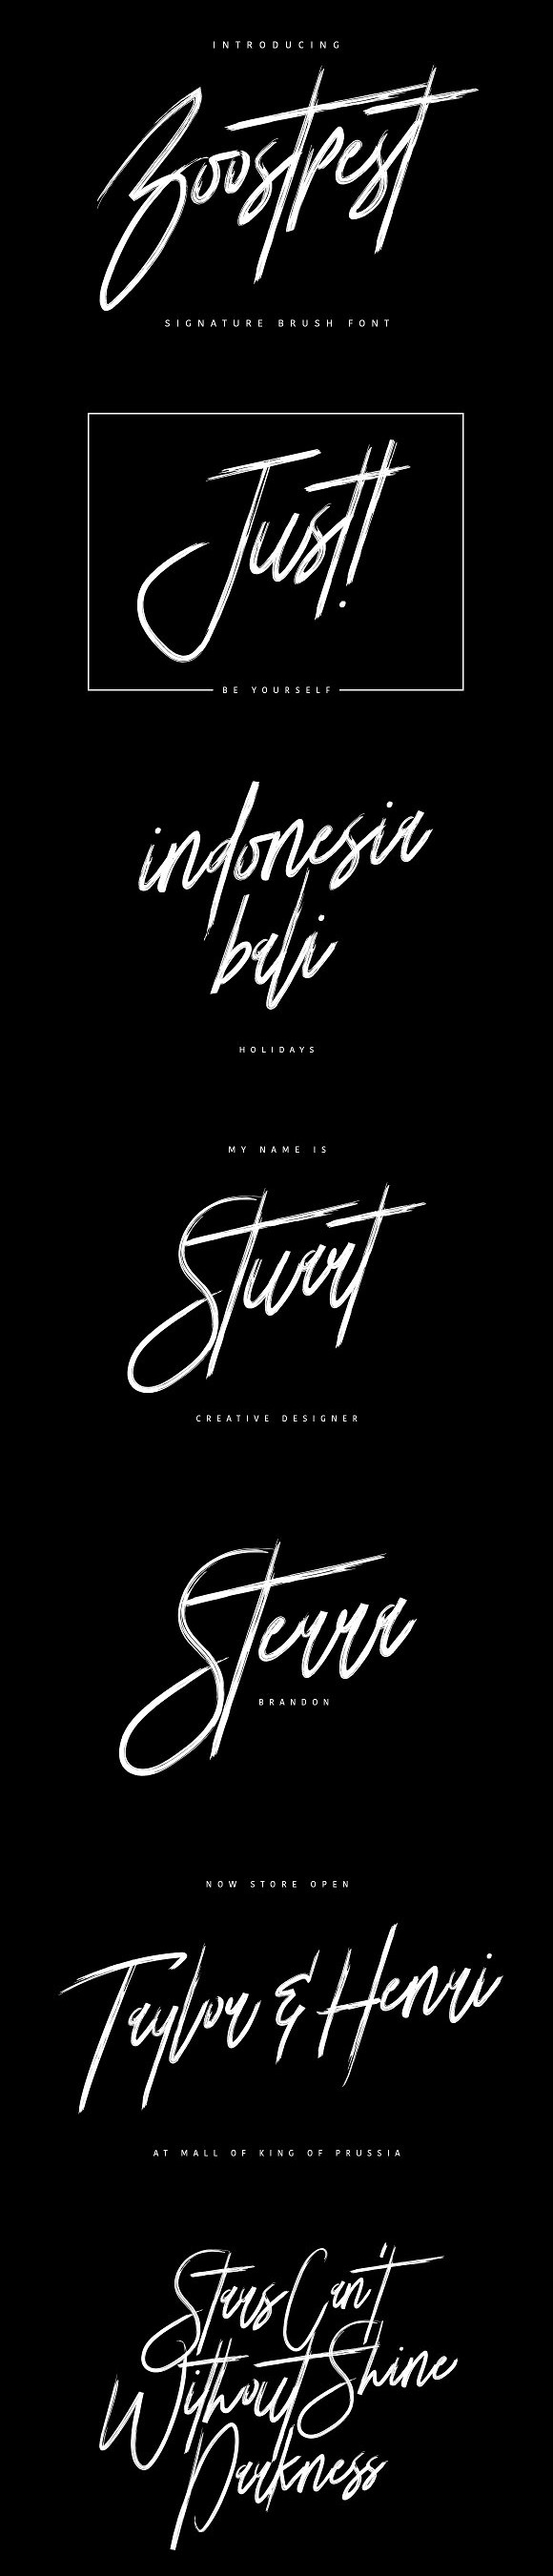 Boostpest Signature Brush Font Brush Font Signature Fonts Cool